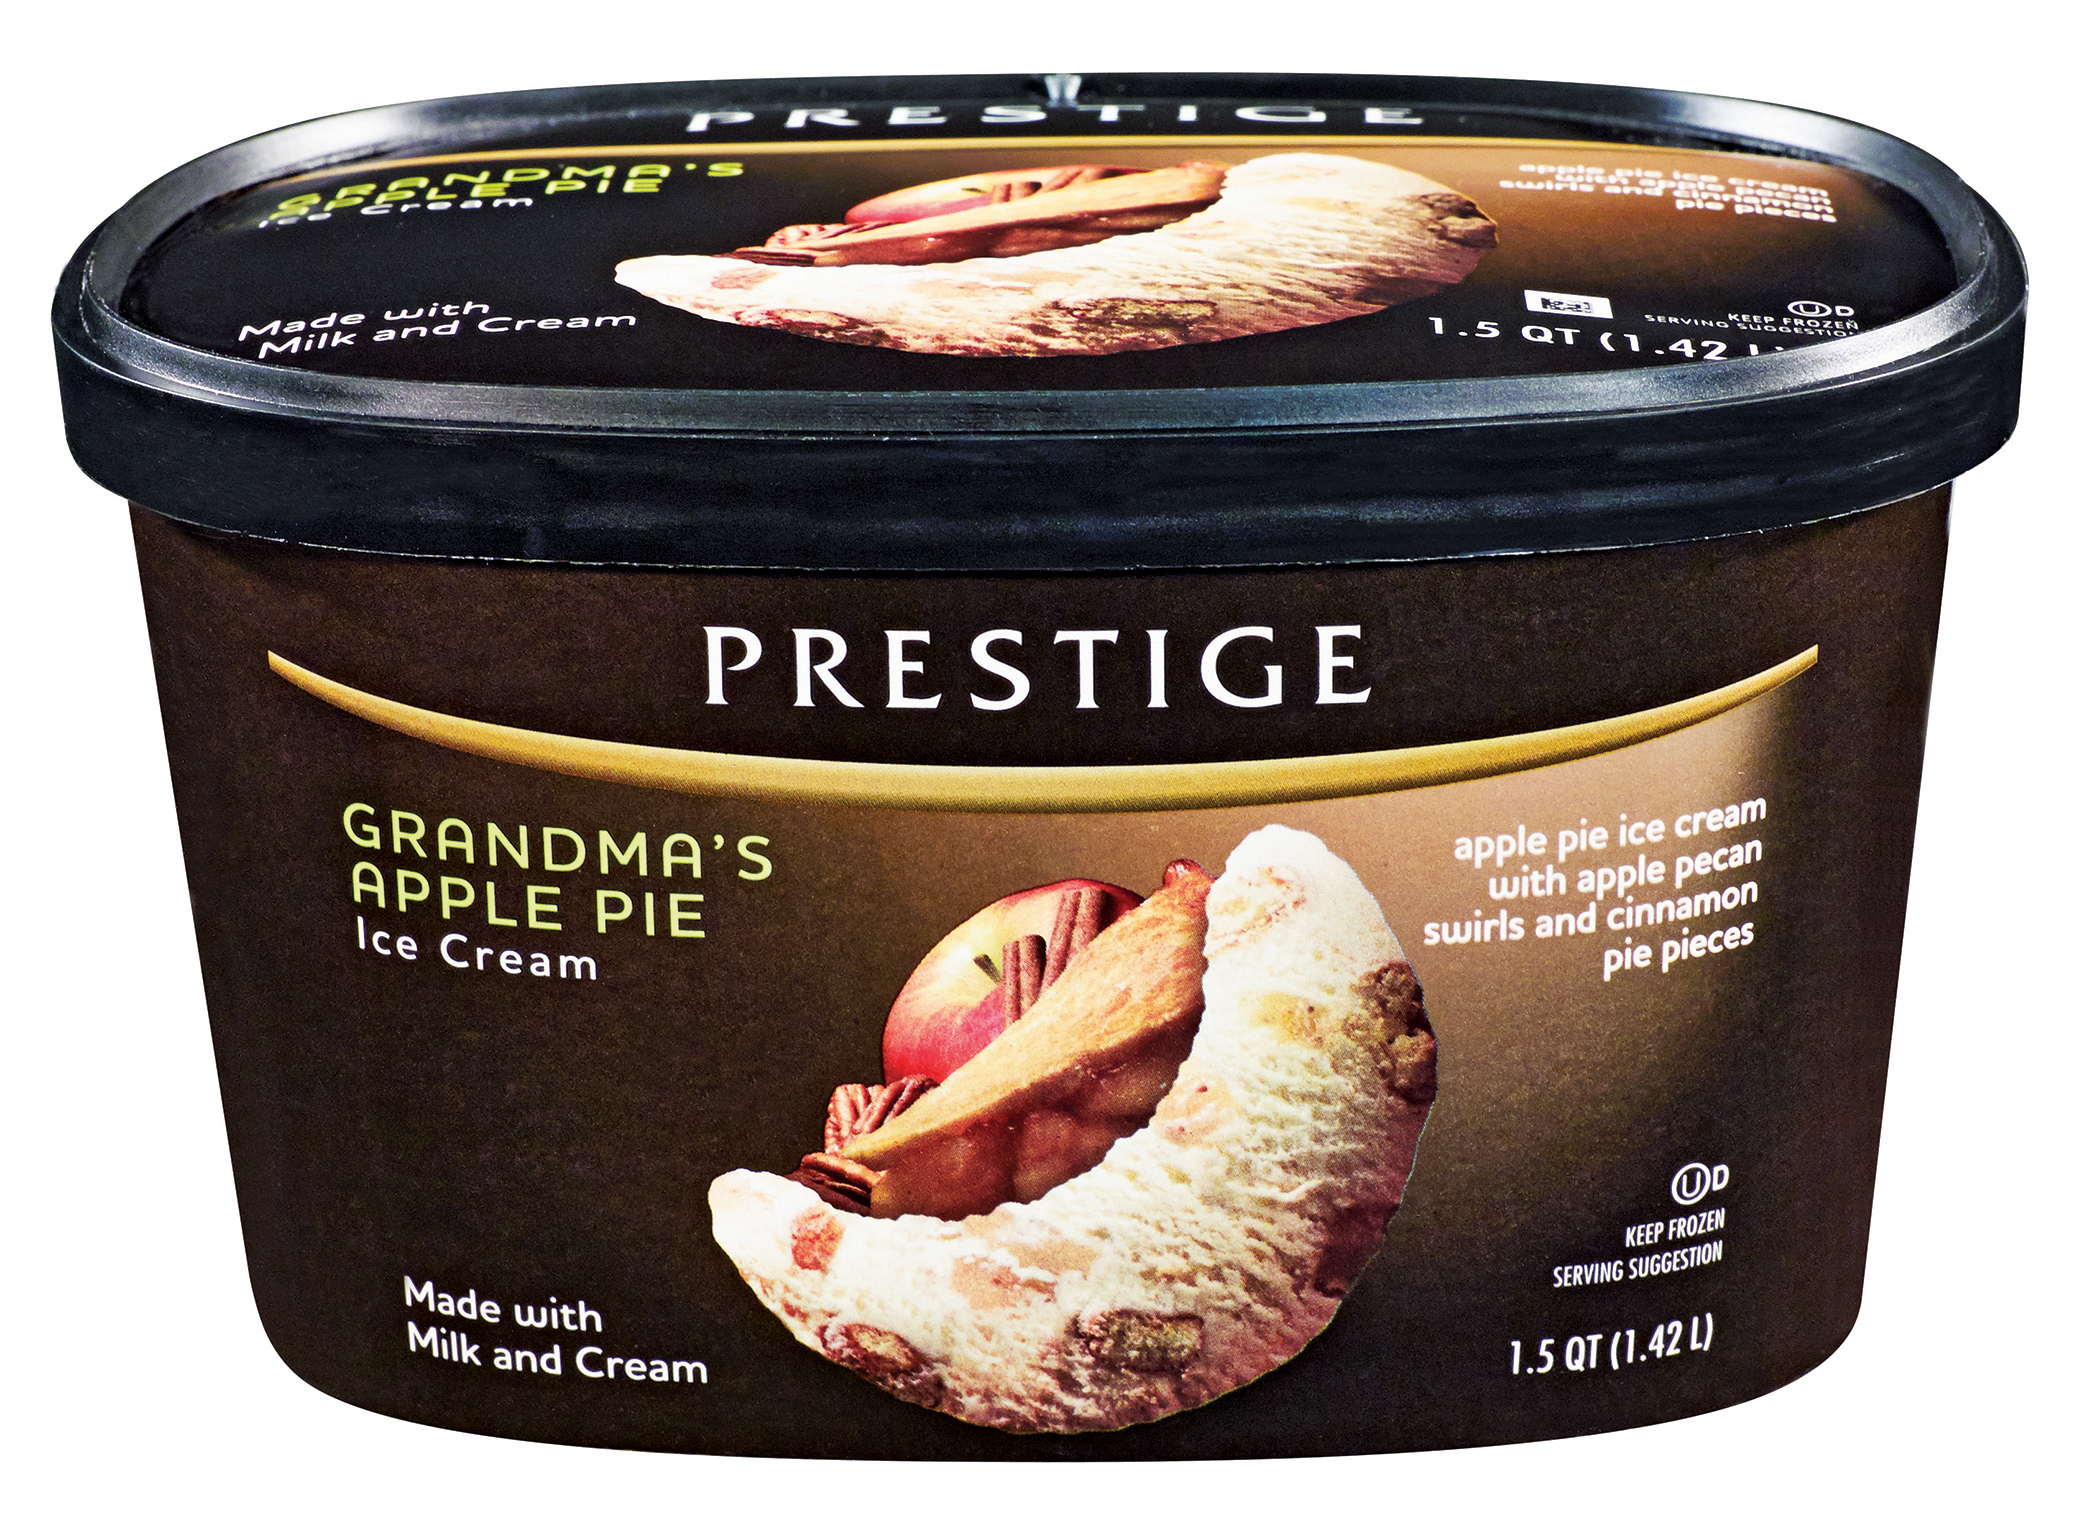 Prestige Premium Ice Cream. Made with real milk and cream. (Photo: Business Wire)